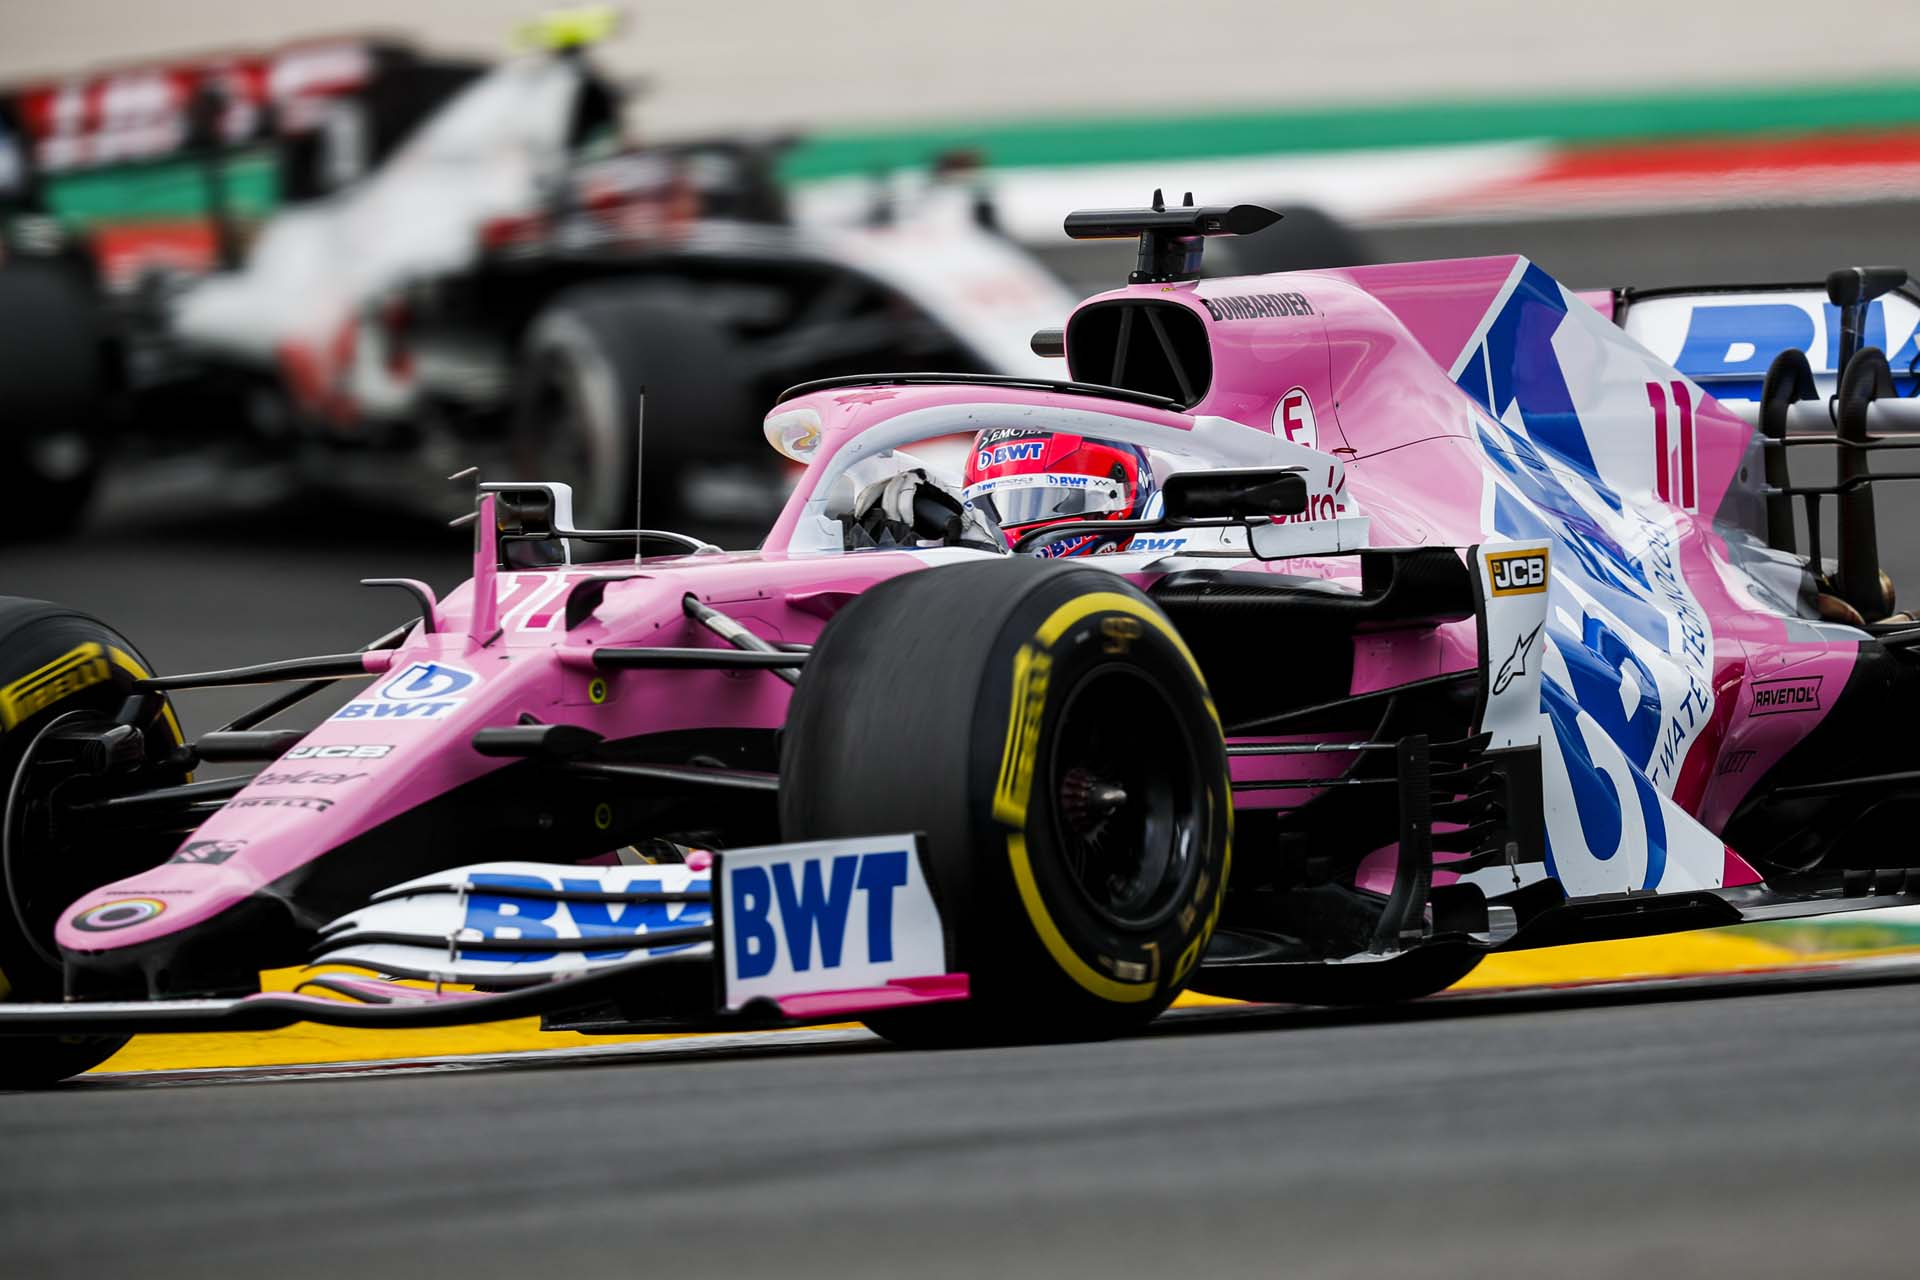 Sergio Perez, Racing Point RP20, leads Kevin Magnussen, Haas VF-20